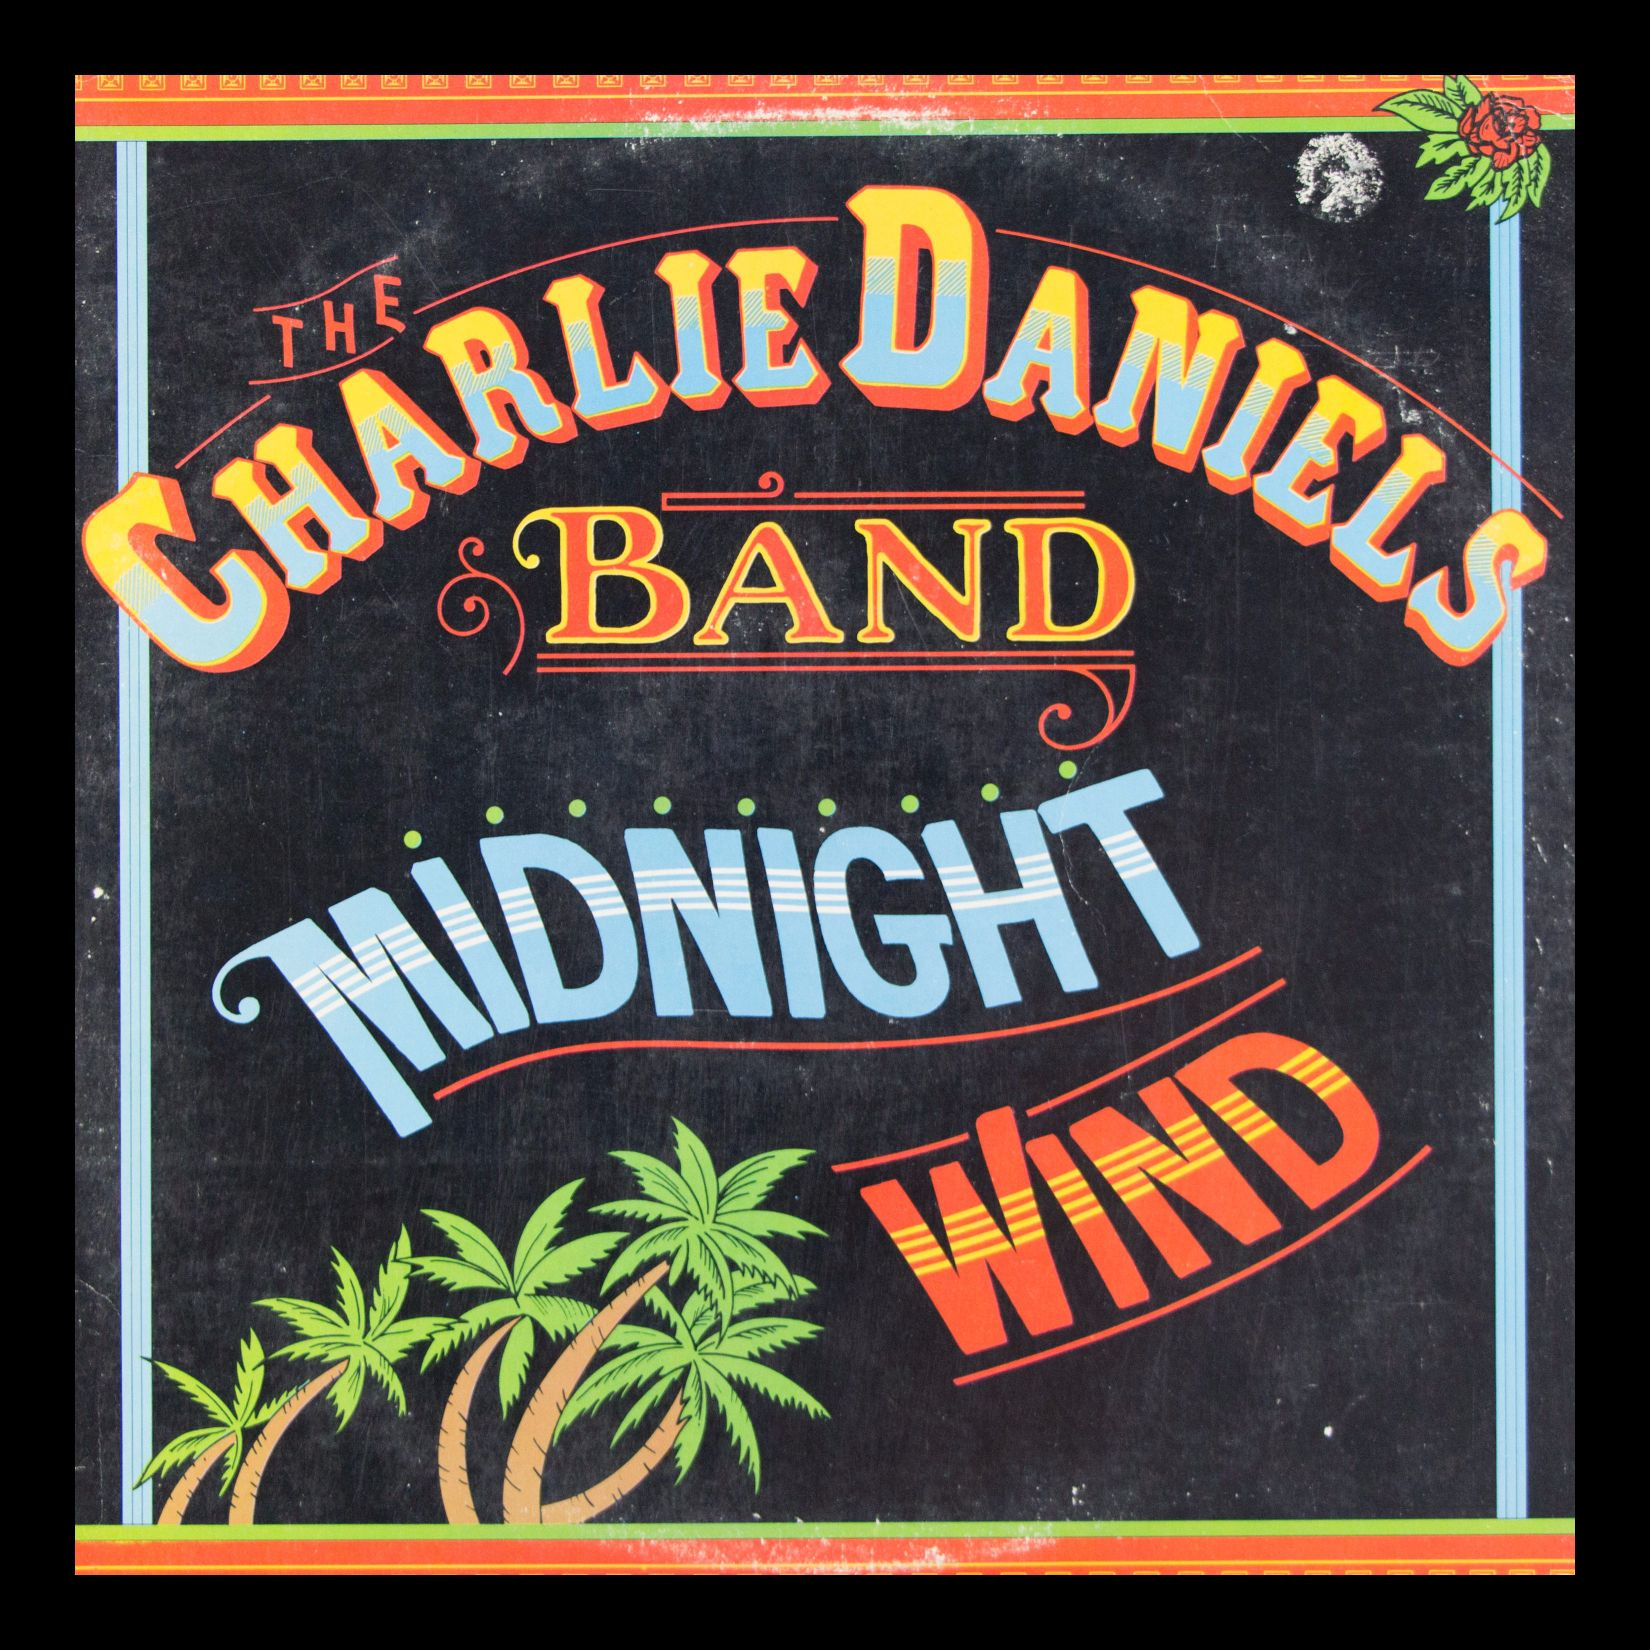 The Charlie Daniels Band Midnight Wind Vintage Album in Frame